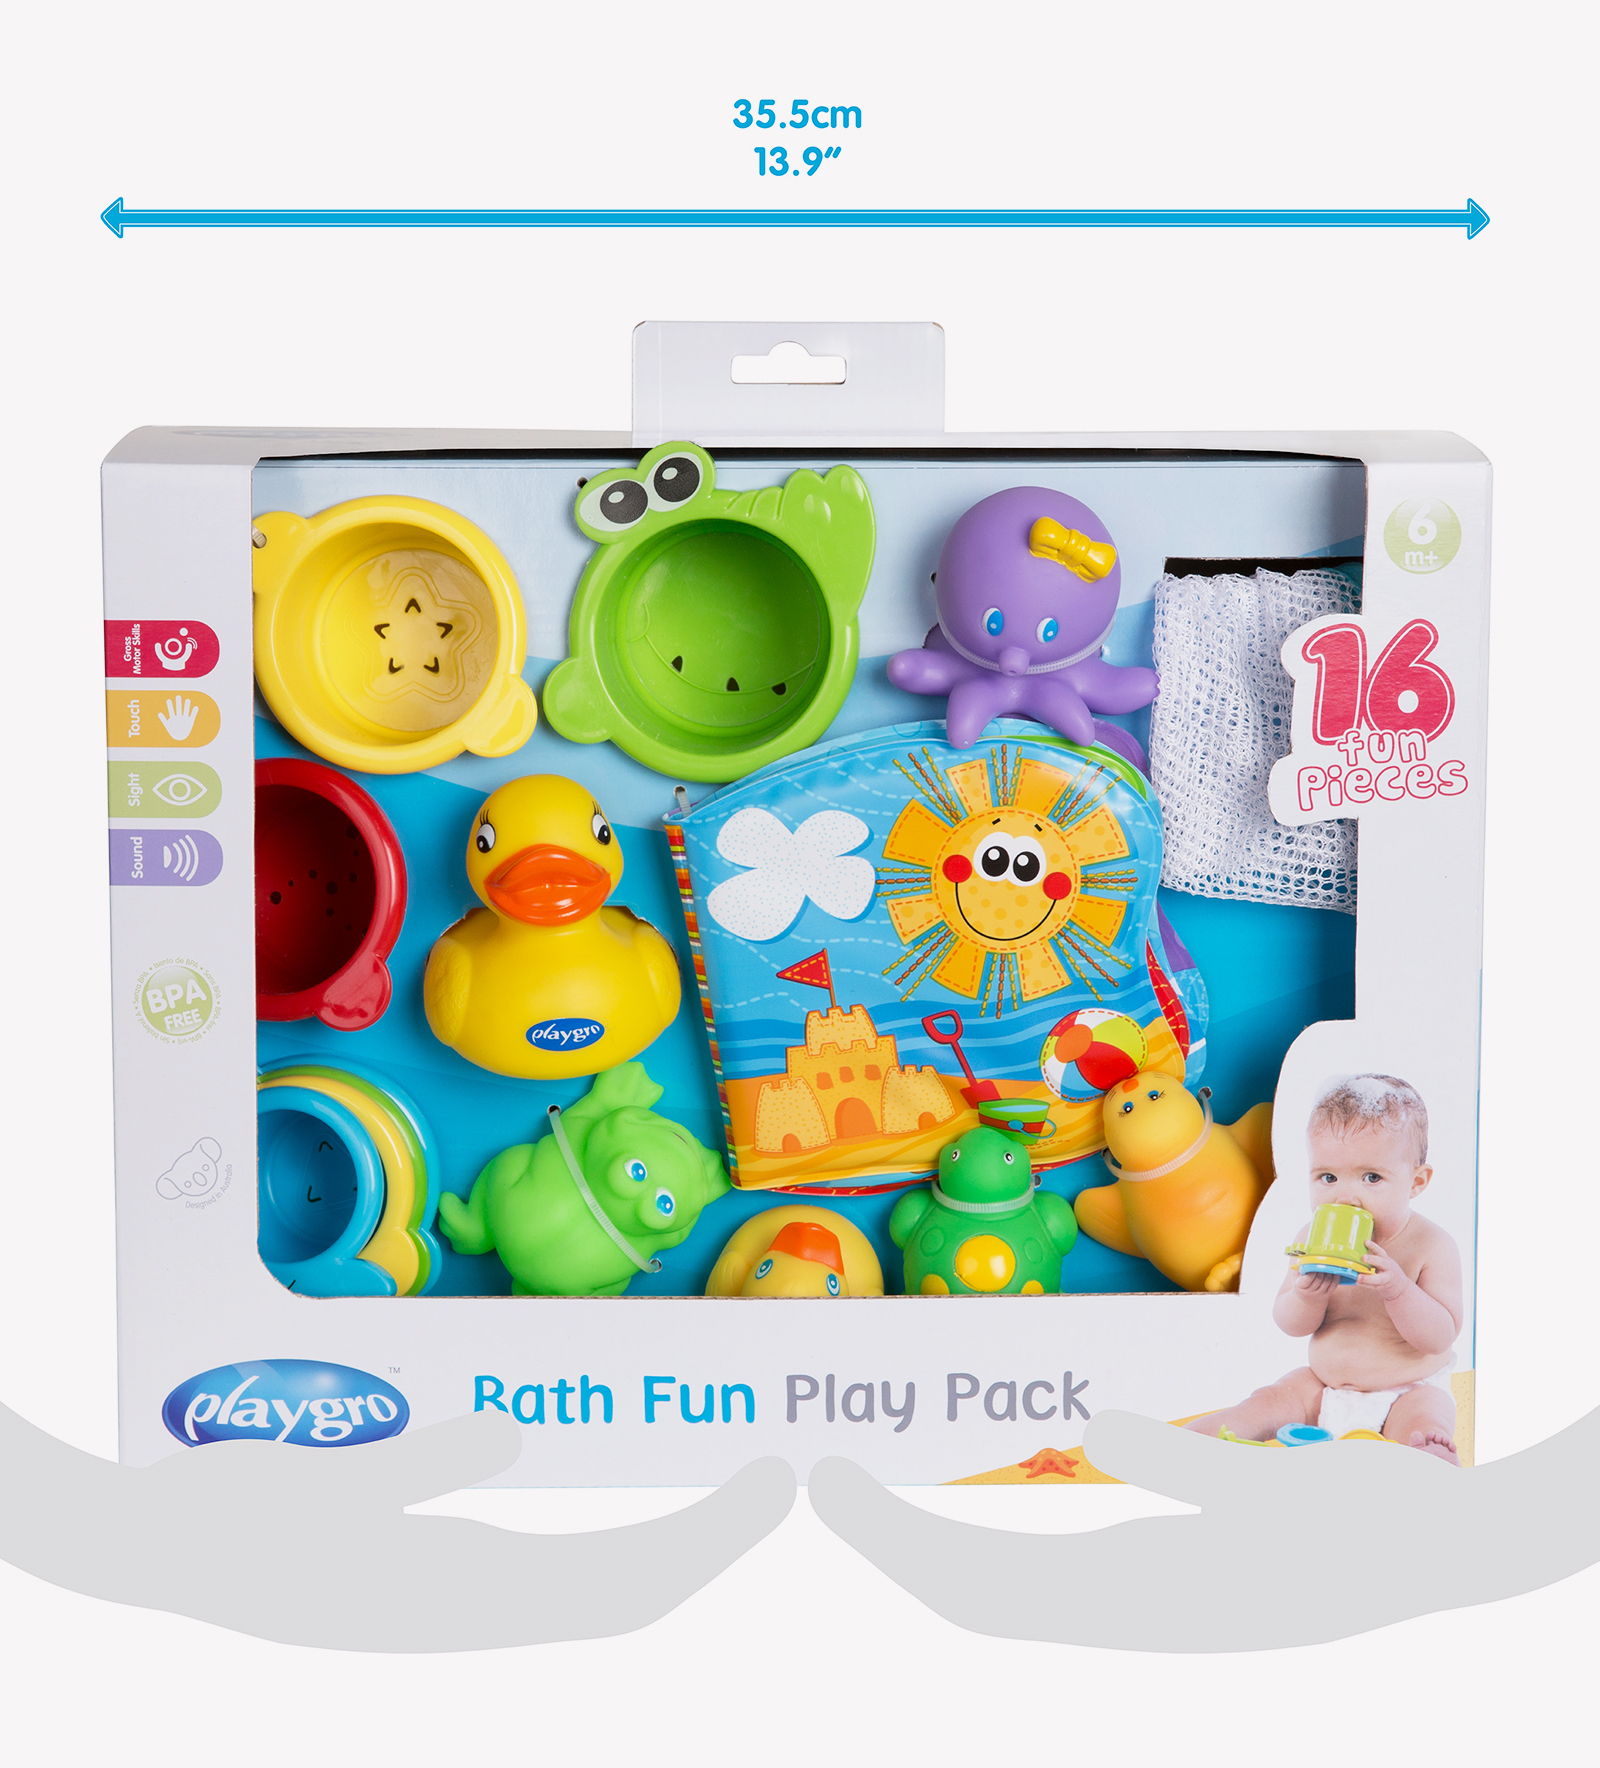 Bath Fun Play Pack 4